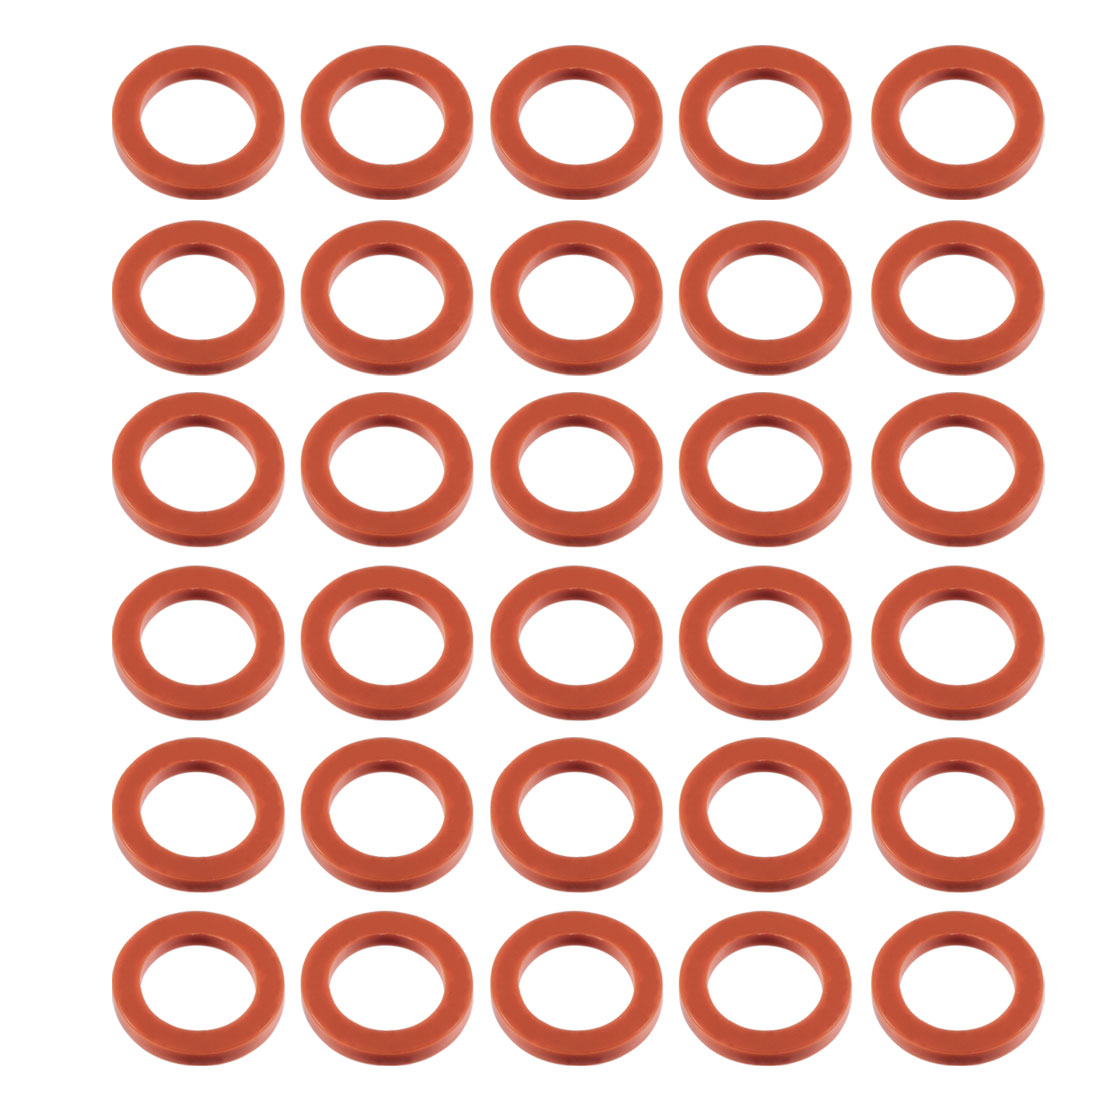 30pcs Red Silicone Round Flat Washer Assortment Size 16x24x3mm Flat Washer - image 2 of 2